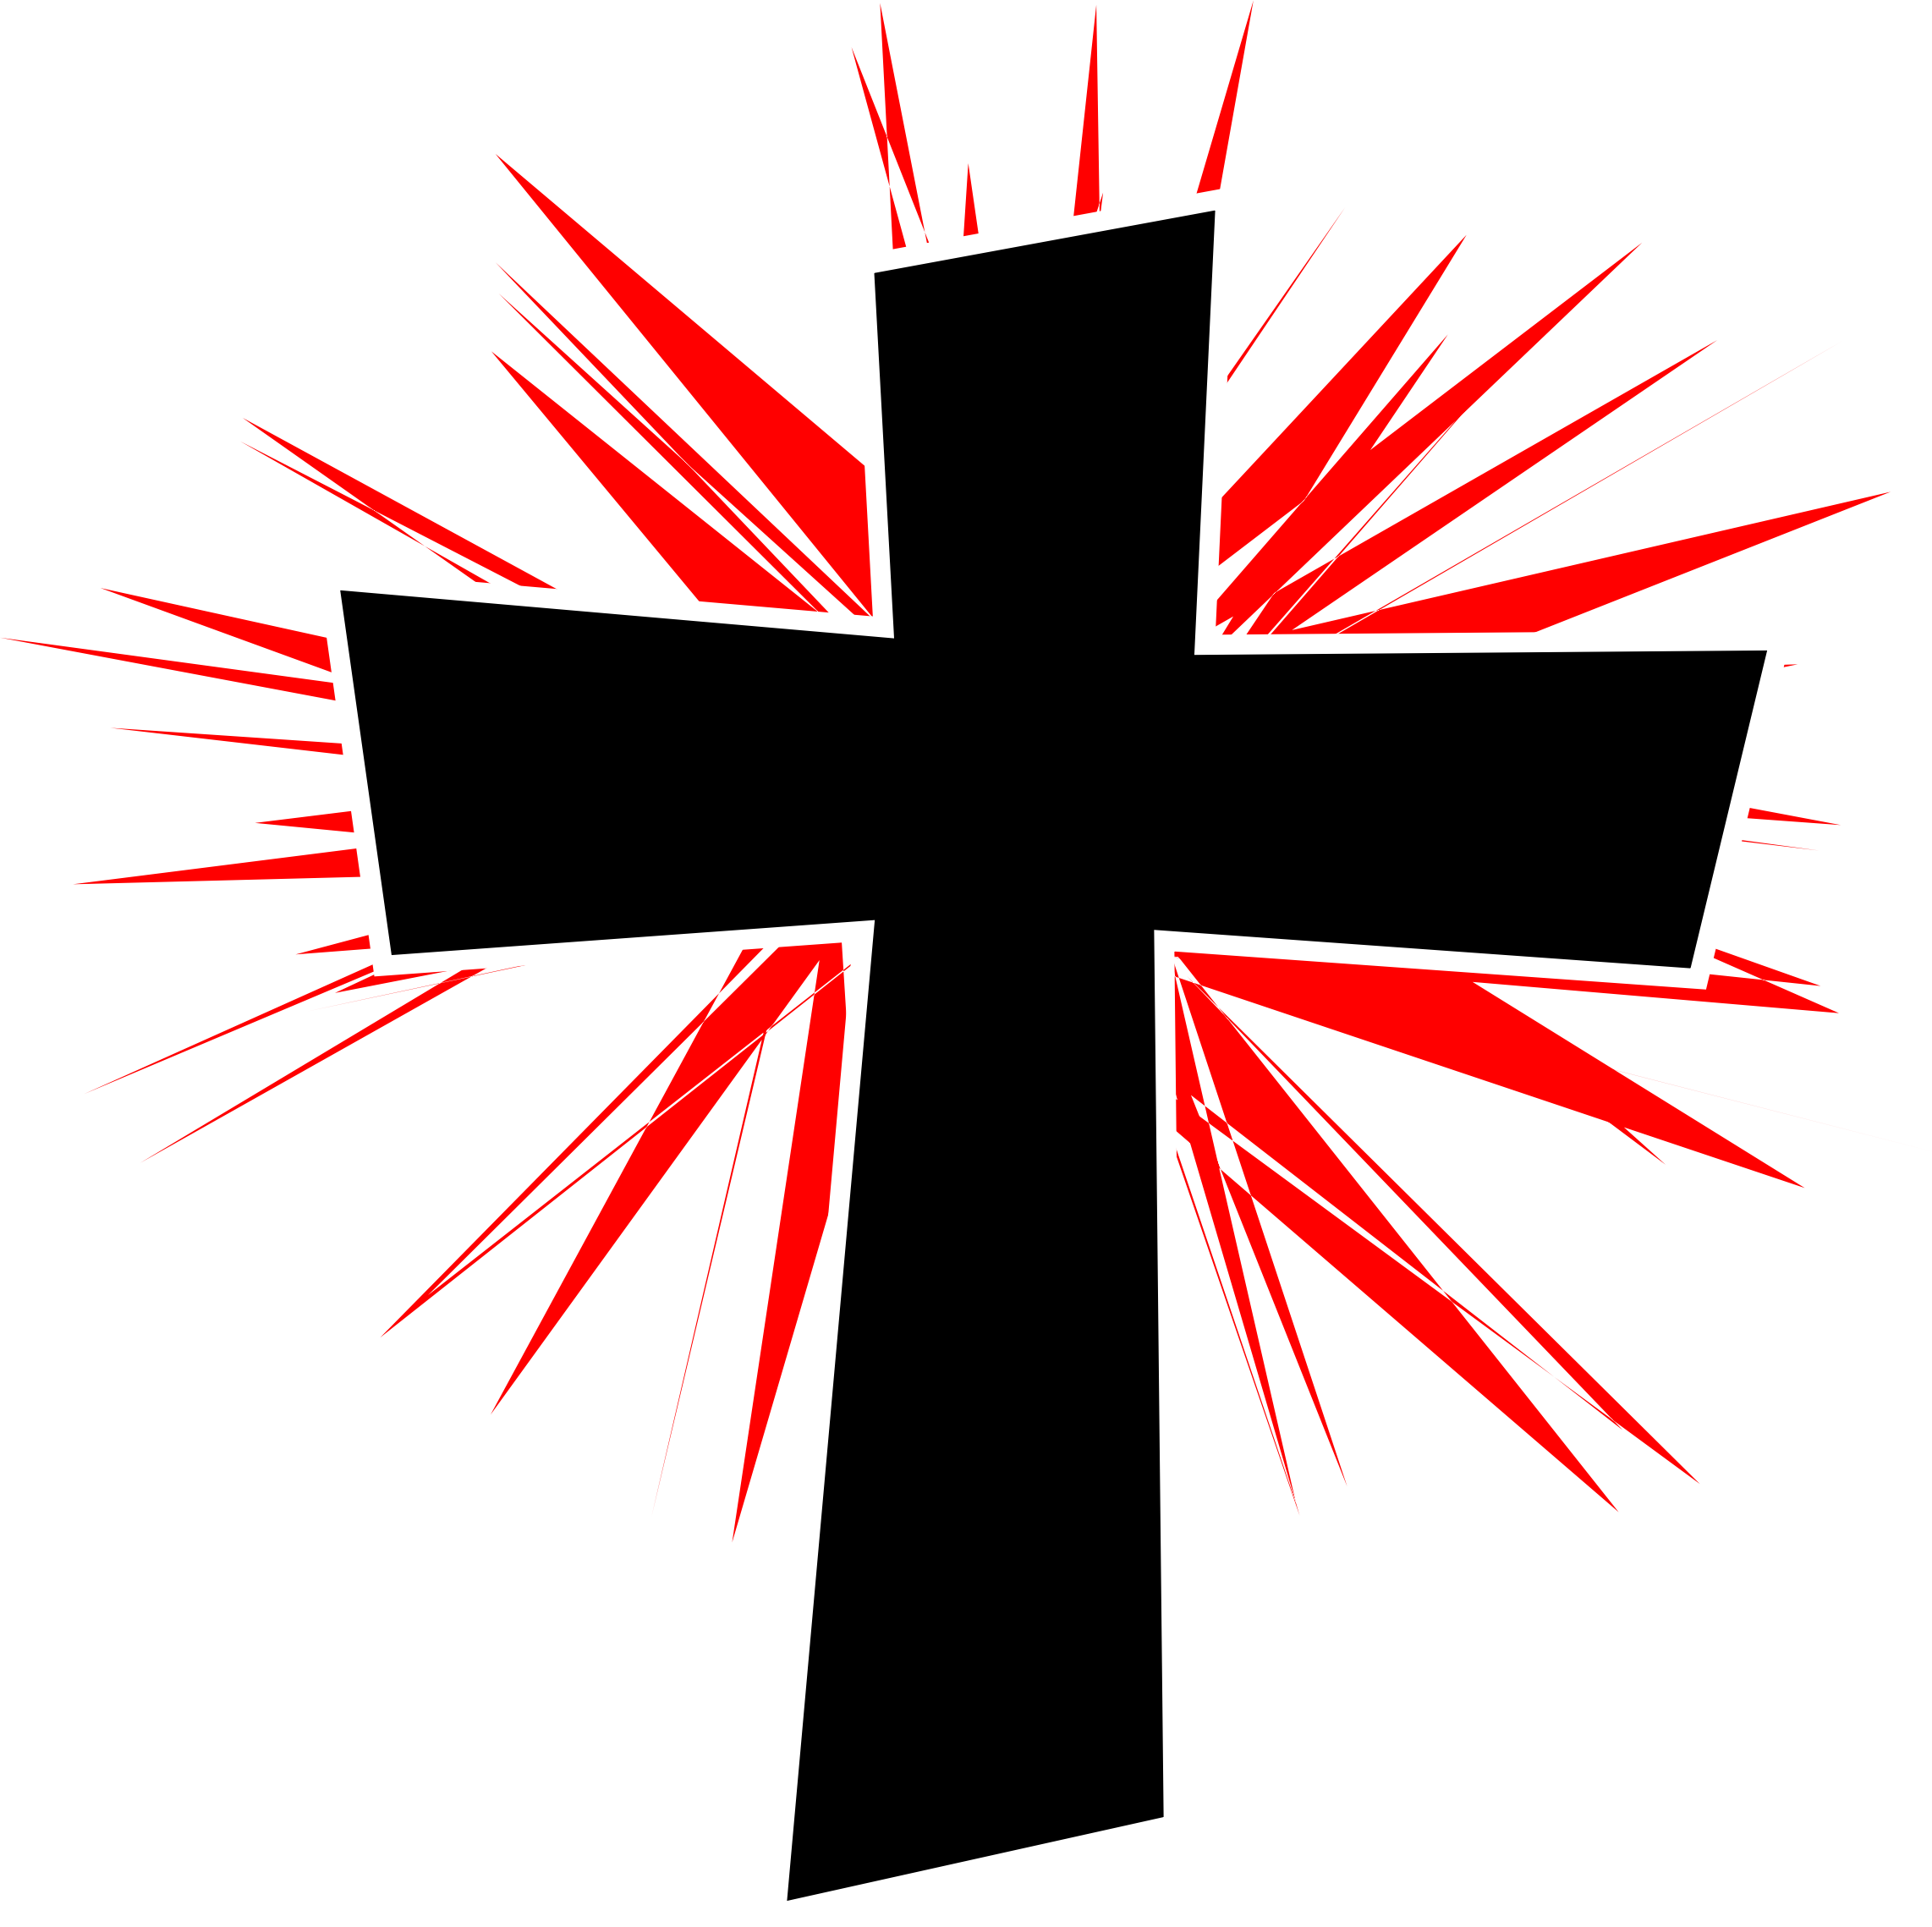 Red white and blue cross clipart clip free download 28+ Collection of Glowing Cross Clipart | High quality, free ... clip free download